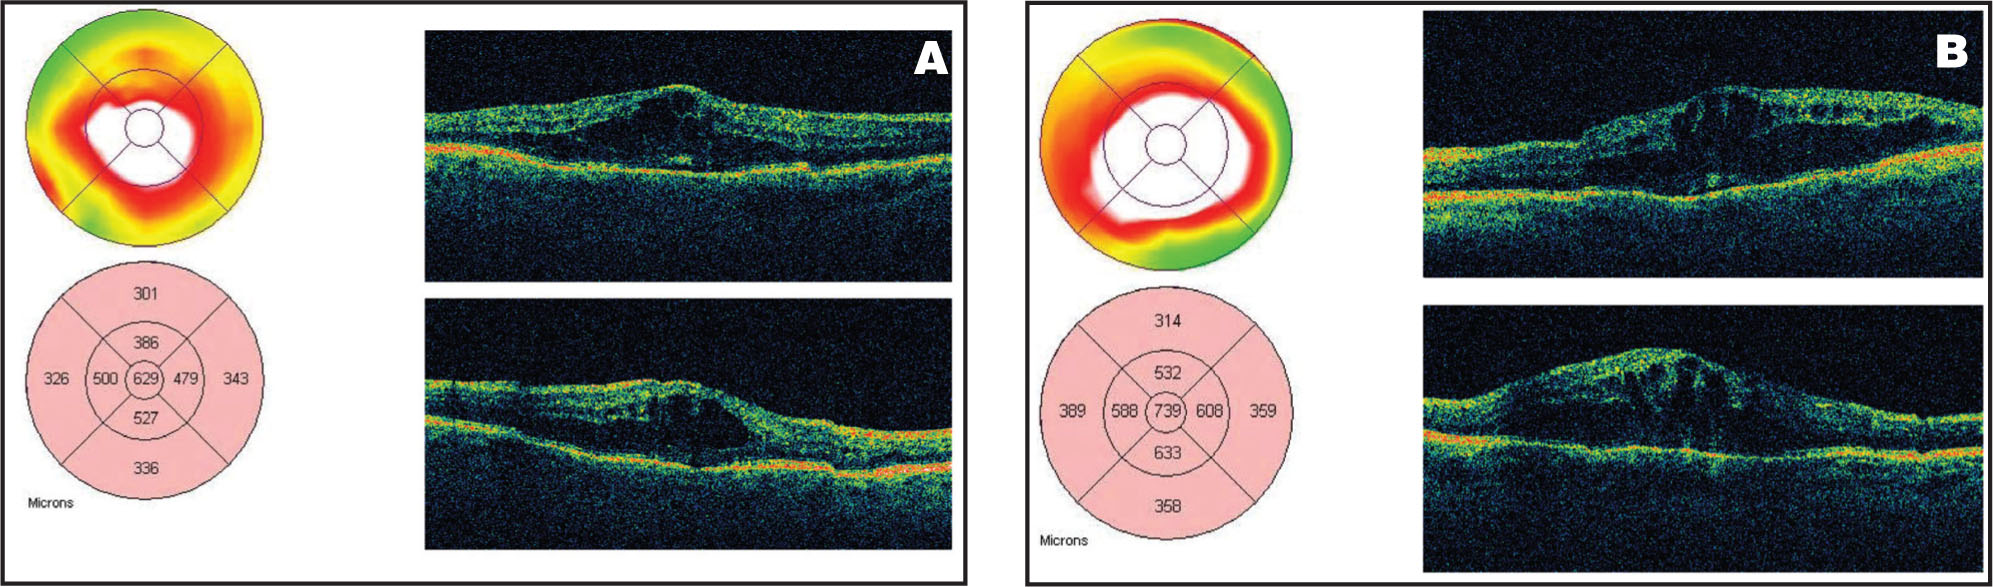 (A) OCT of the Right Eye in Case #2, Showing a Central Macular Thickness of 629 Microns. (B) OCT of the Left Eye, Showing that the Central Macular Thickness Was 739 Microns Prior to IVTA.